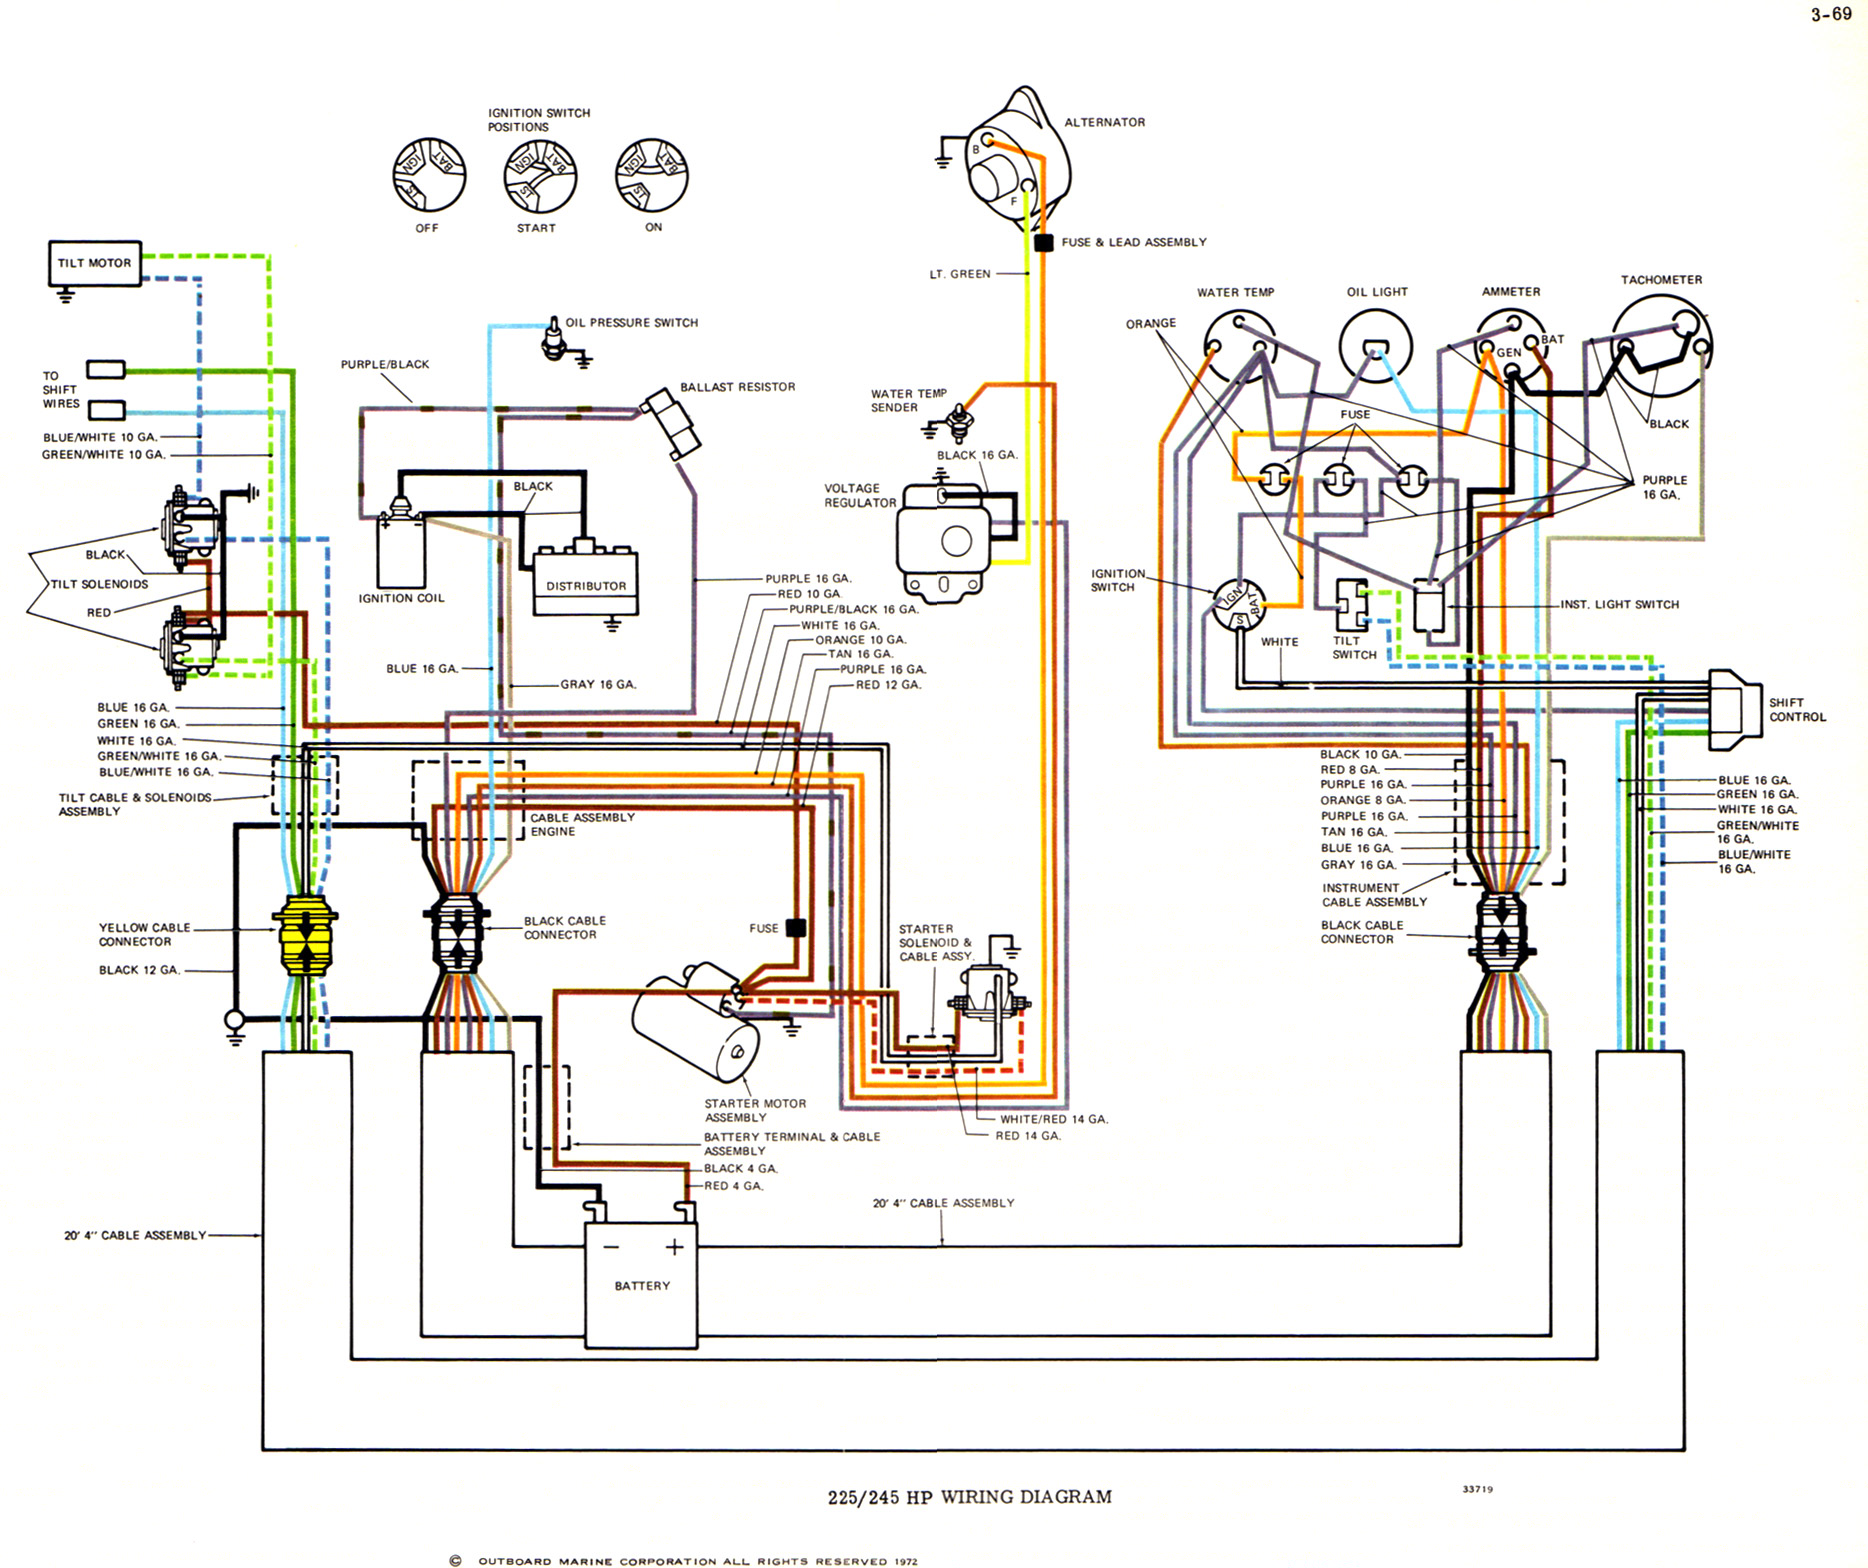 73_OMC_V8_all_big omc boat technical info omc wiring harness diagram at gsmx.co